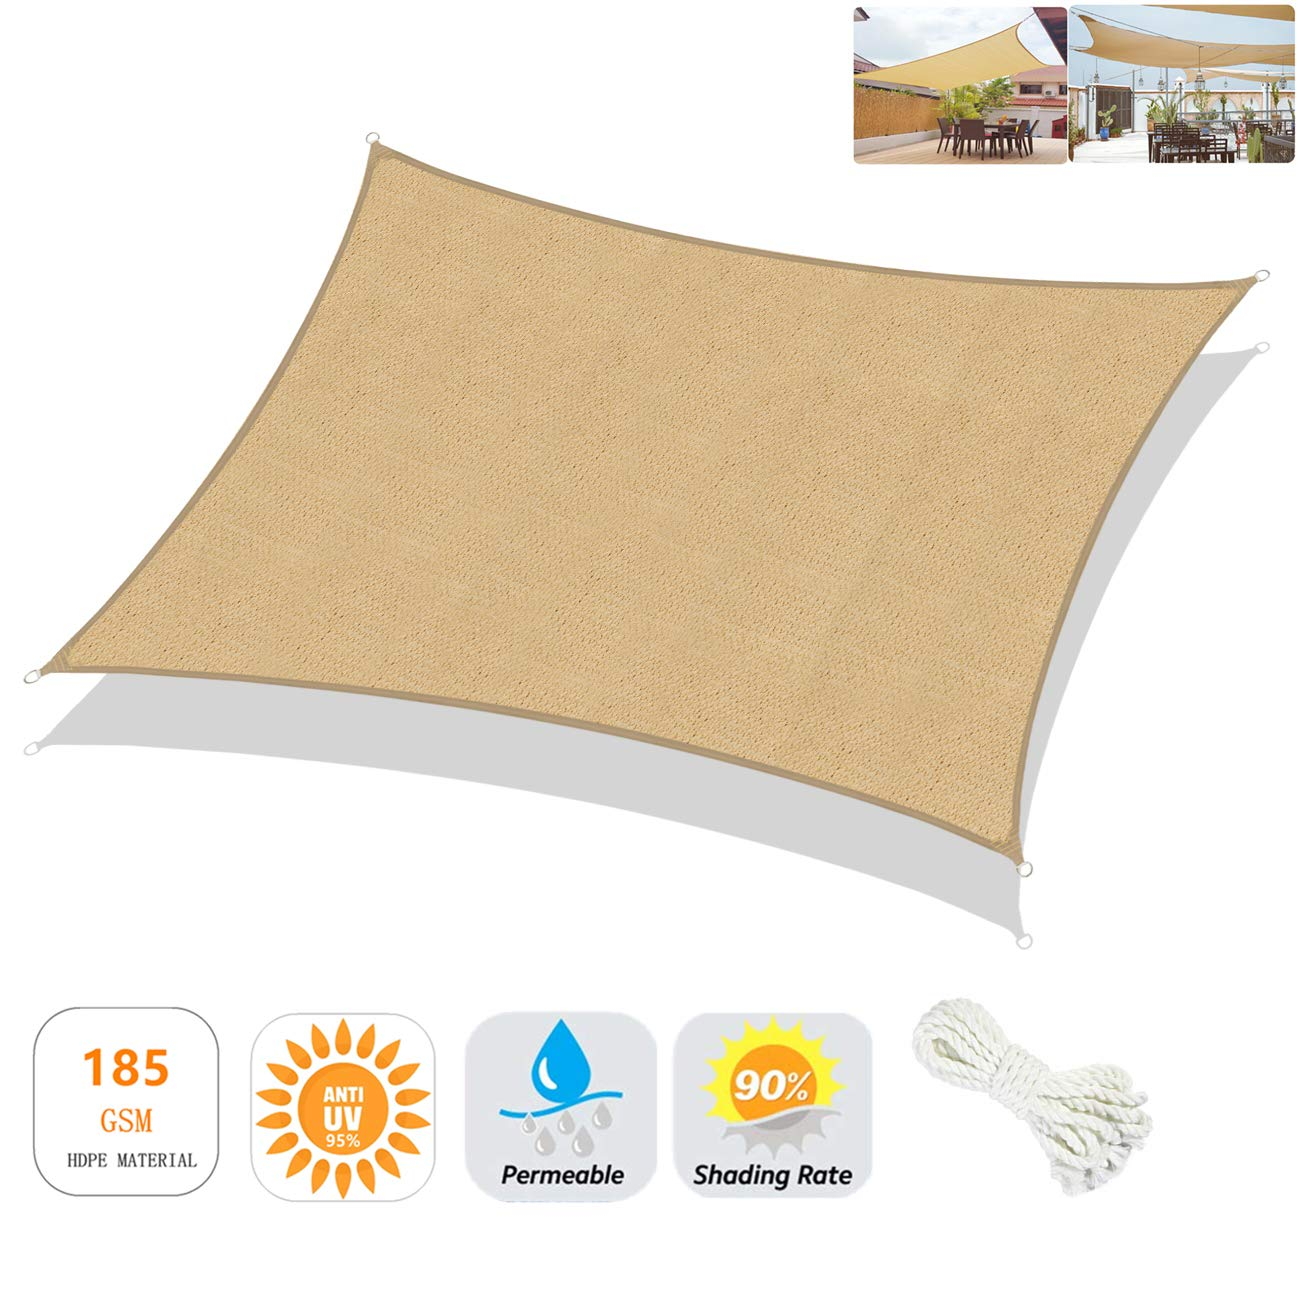 Sekey 10 x13 Rectangle Sun Shade Sail Canopy HDPE Breathable Permeable UV Block Weather Resistant Tear Durable, Perfect for Outdoor Patio Garden Yard Backyard, Sand